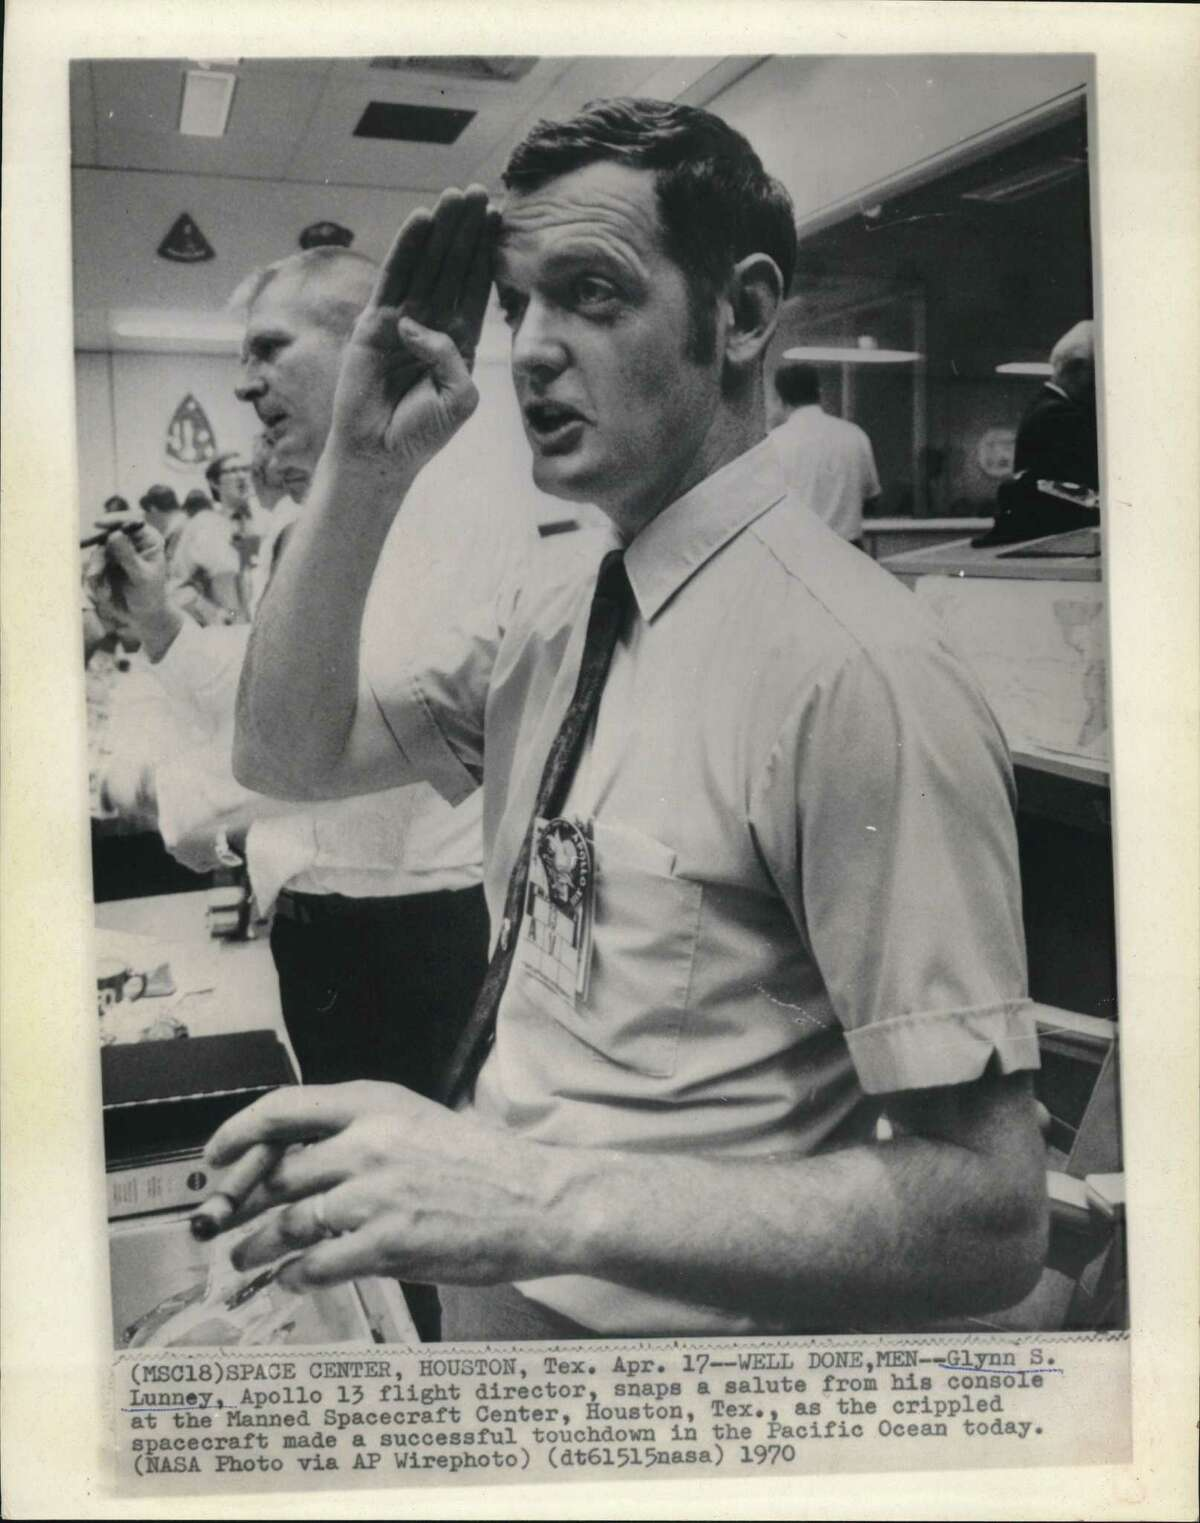 Space Center, Houston, TX: Glynn S. Lunney, Apollo 13 flight director, snaps a salute from his console at the Manned Spacecraft Center, Houston, Texas, as the crippled spacecraft made a successful touchdown in the Pacific Ocean today.